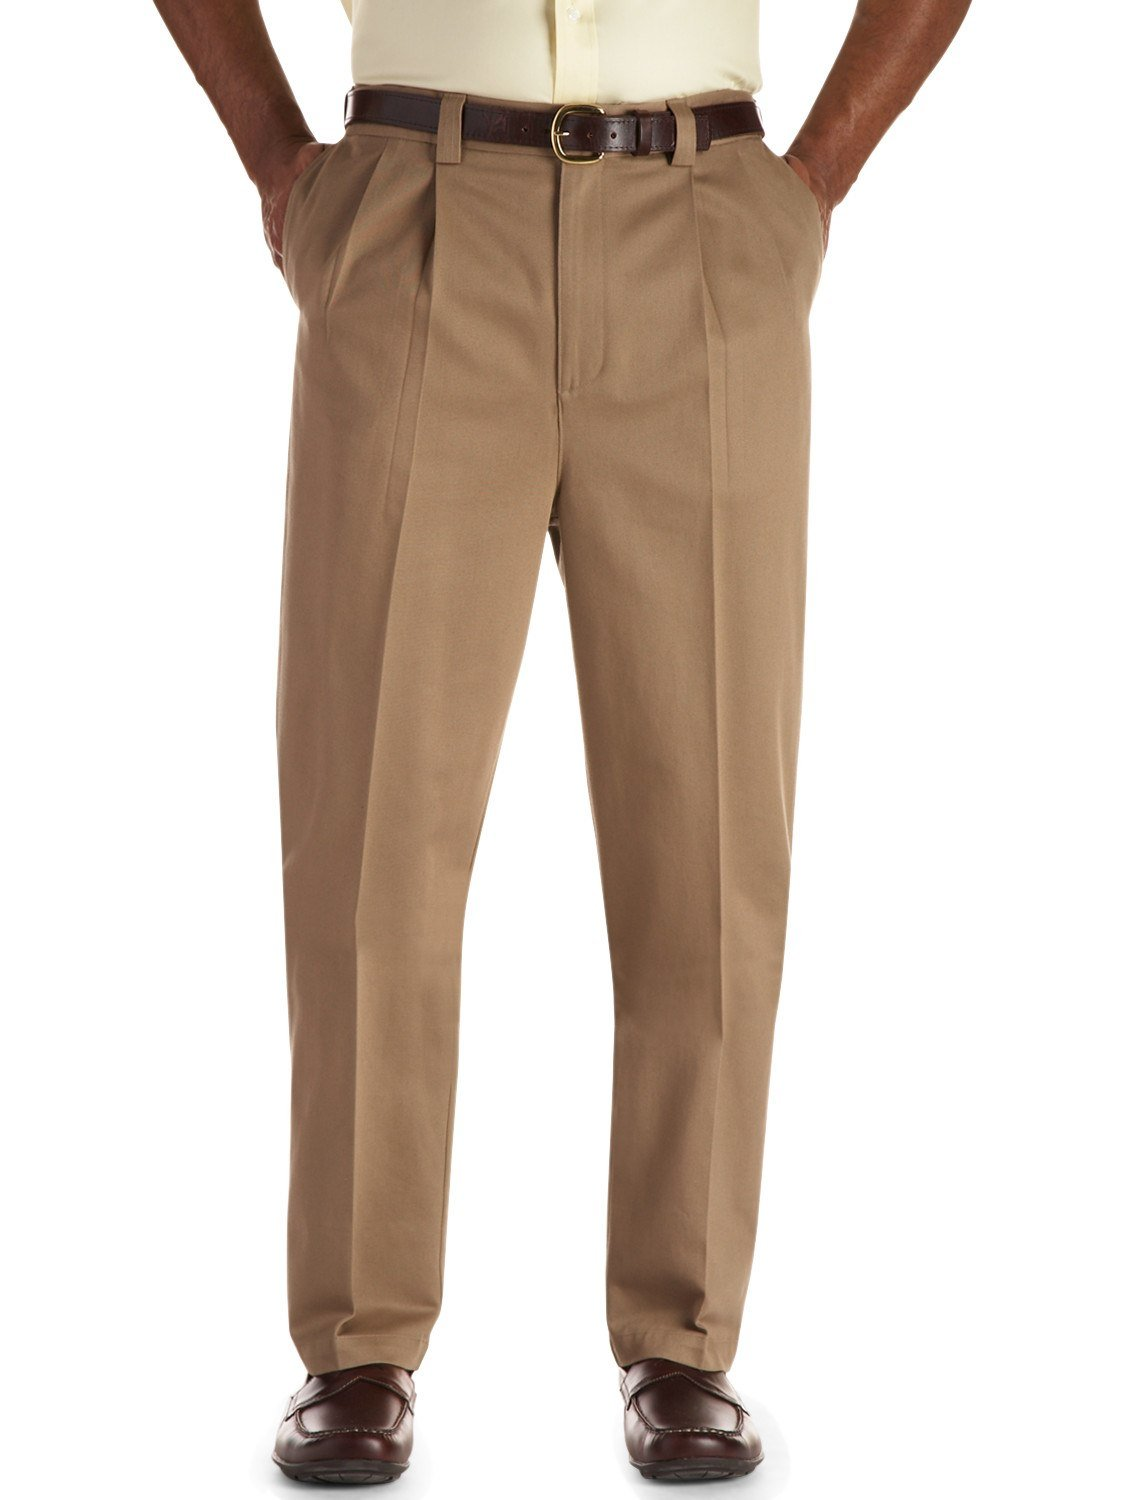 Oak Hill by DXL Big and Tall Pleated Premium Stretch Twill Pants, Latte, 46R 30